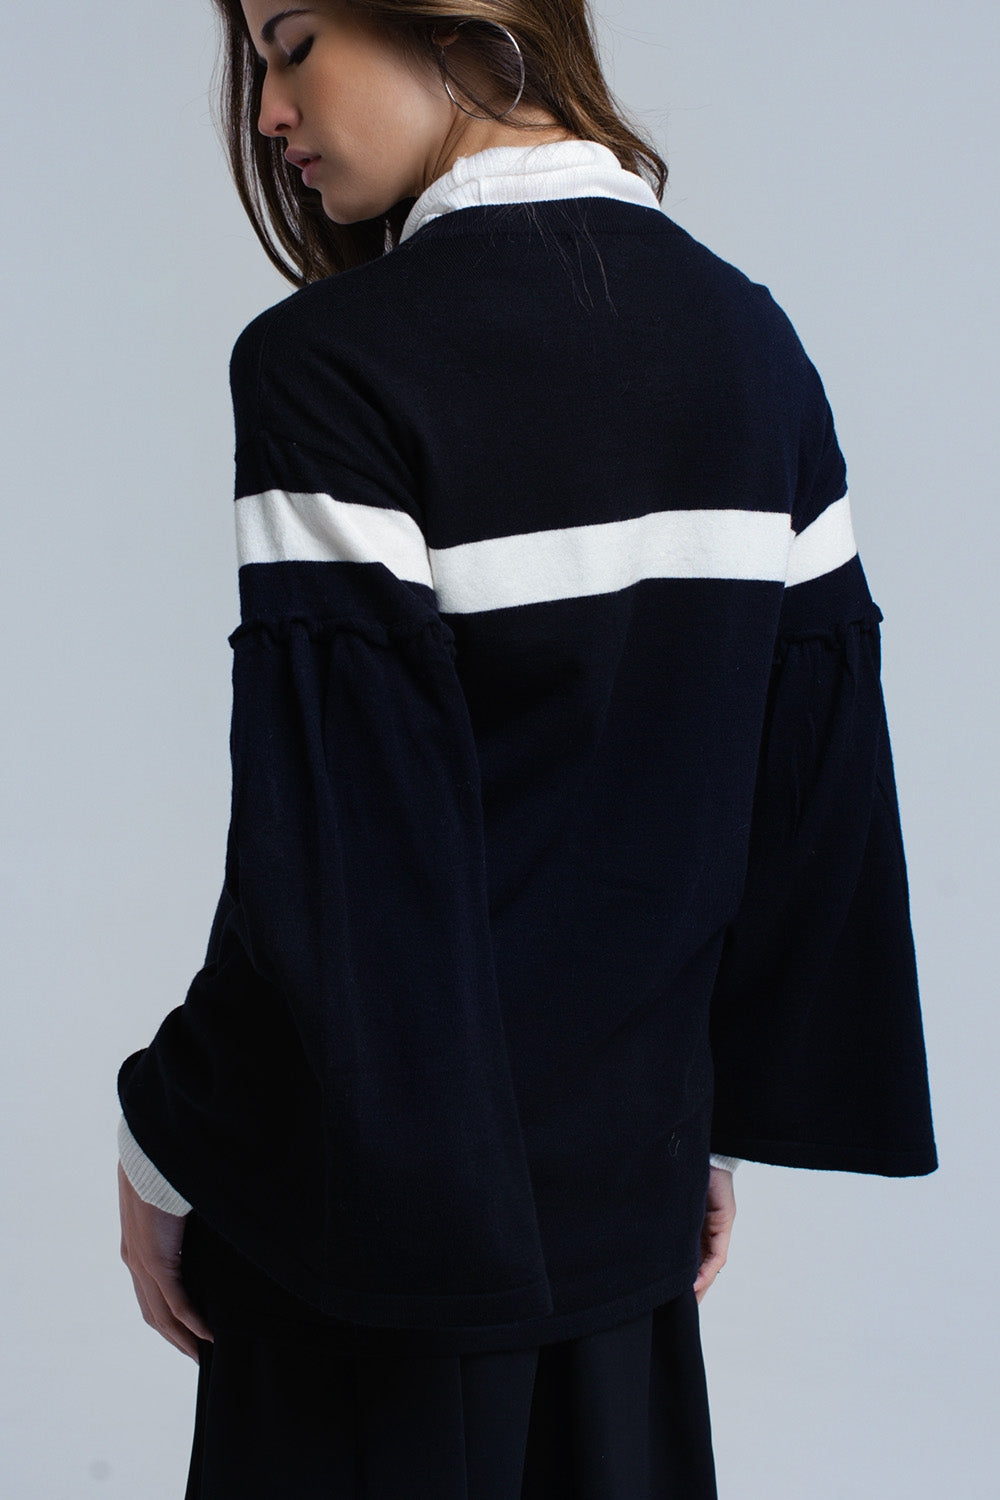 Black Sweater With White Stripe